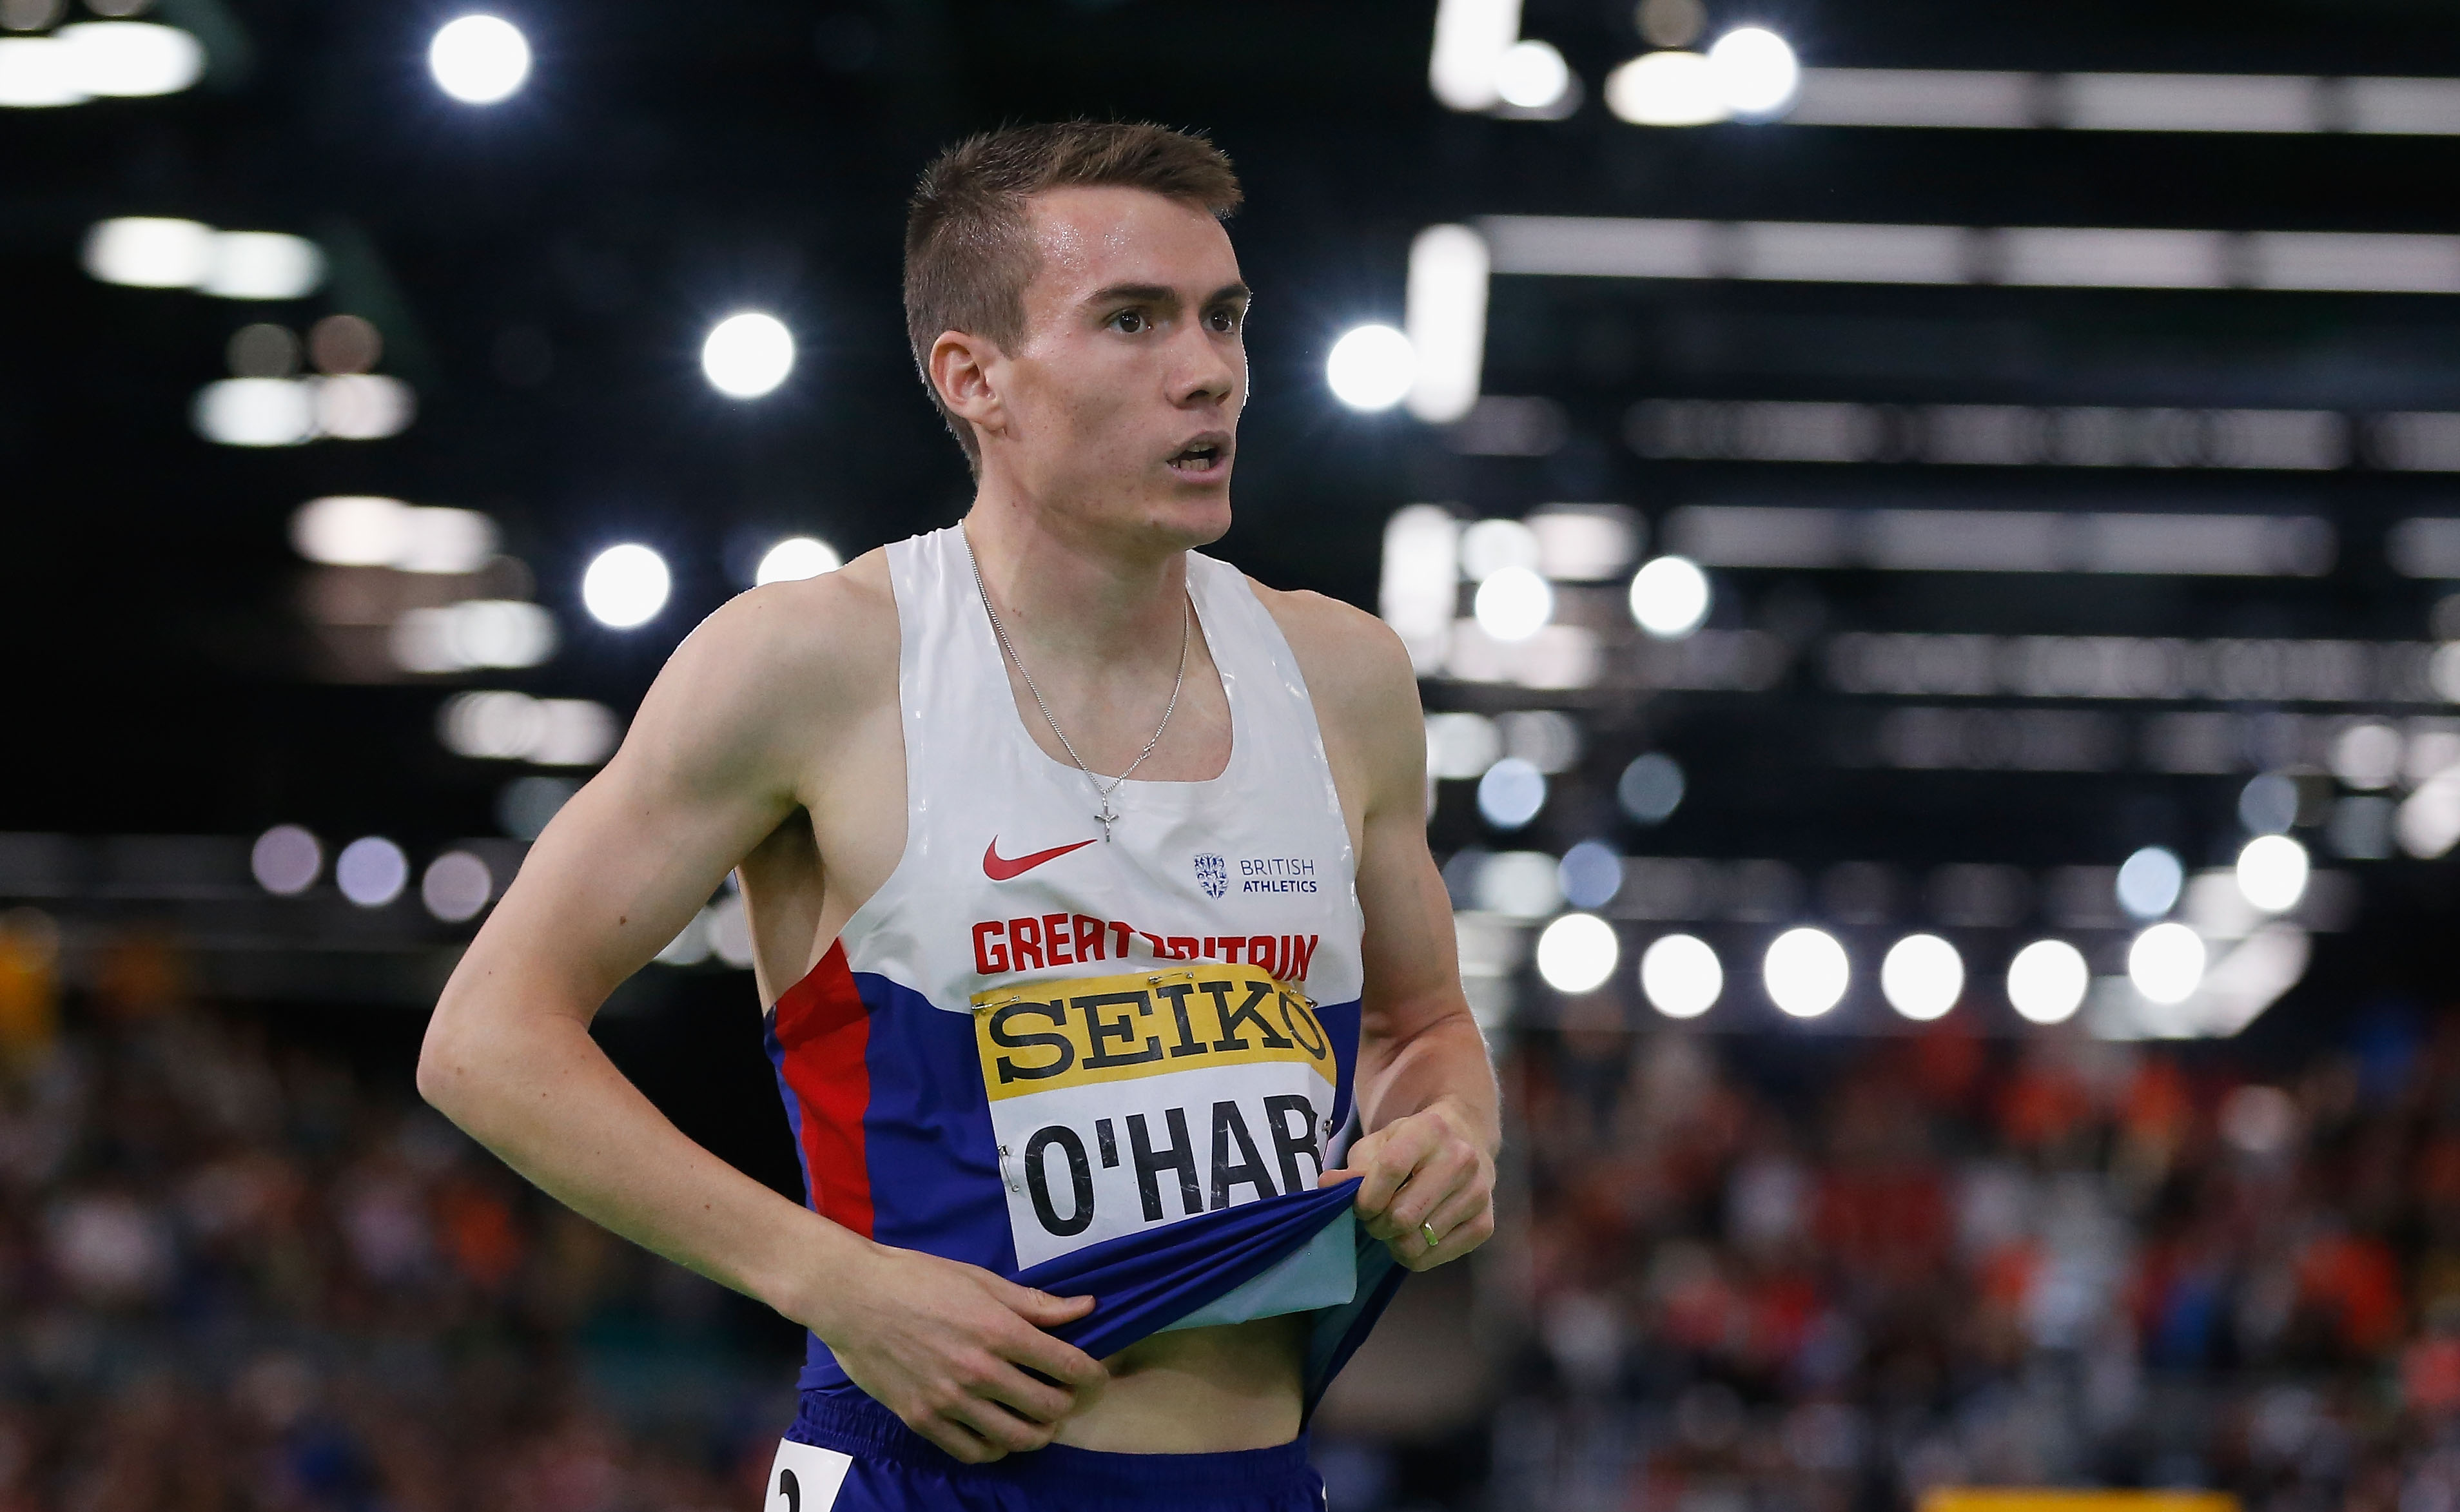 British team begins to takes shape for Glasgow 2019